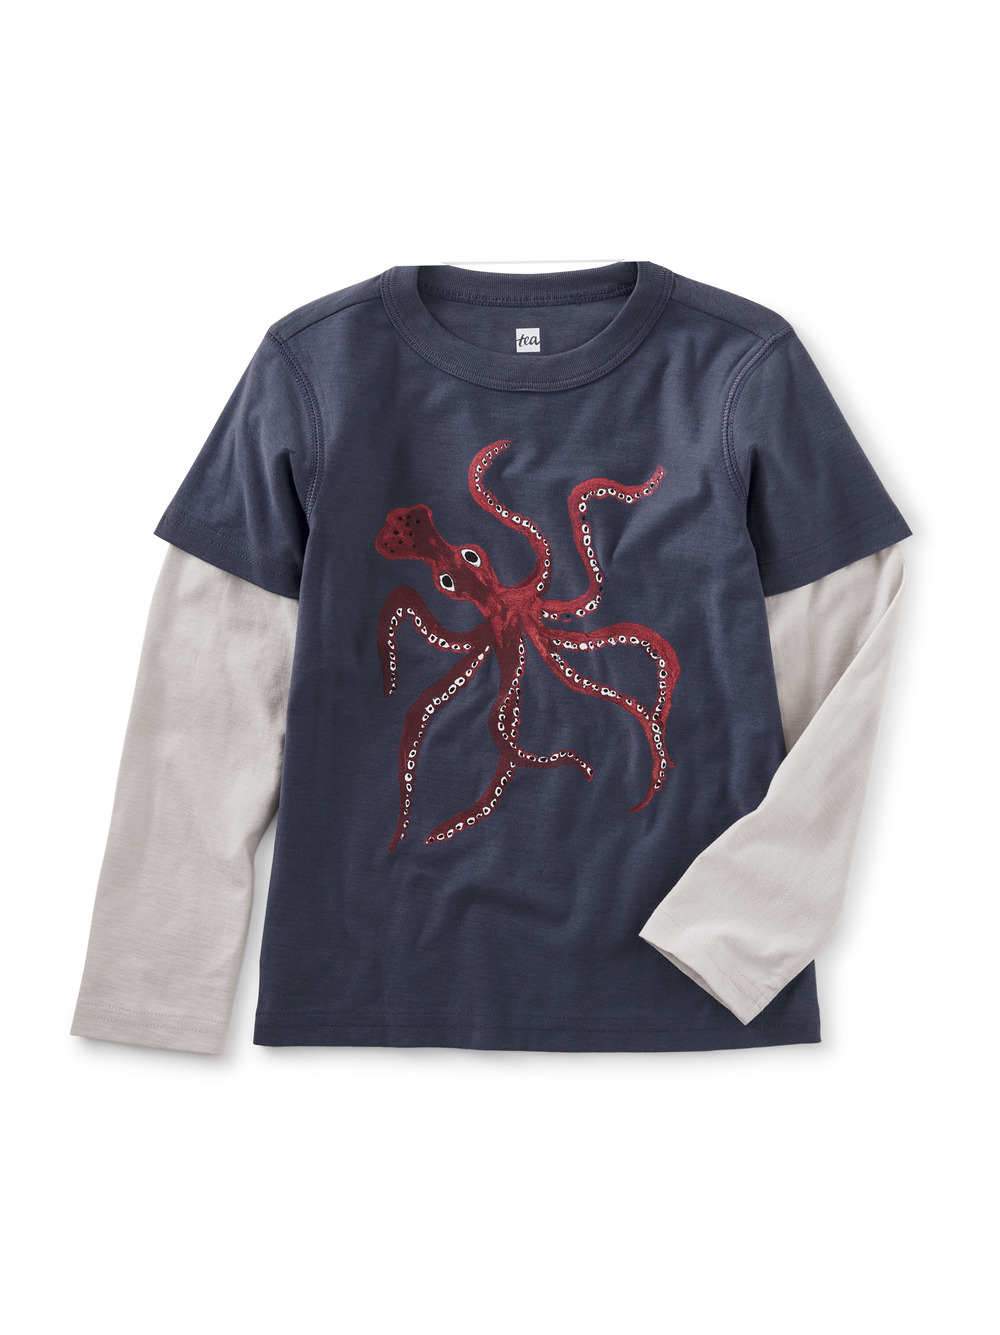 Awesome Octo Graphic Tee